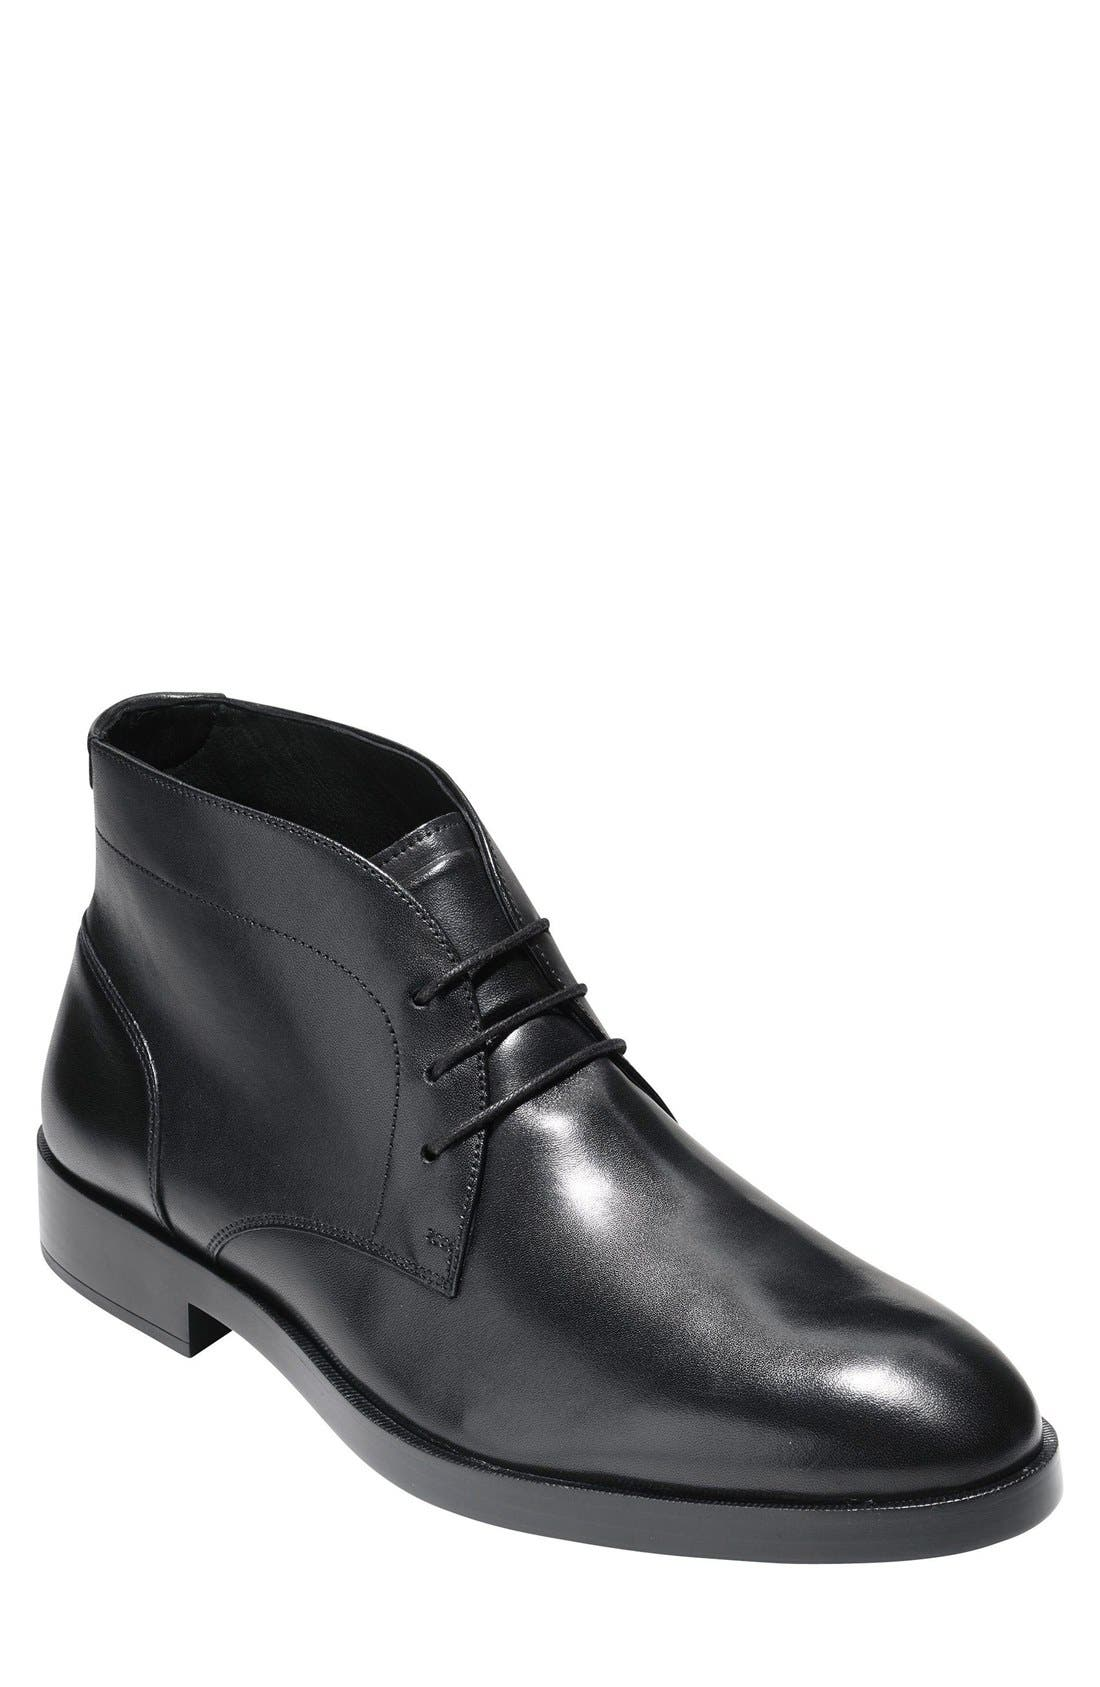 Alternate Image 1 Selected - Cole Haan Harrison Grand Chukka Boot (Men)